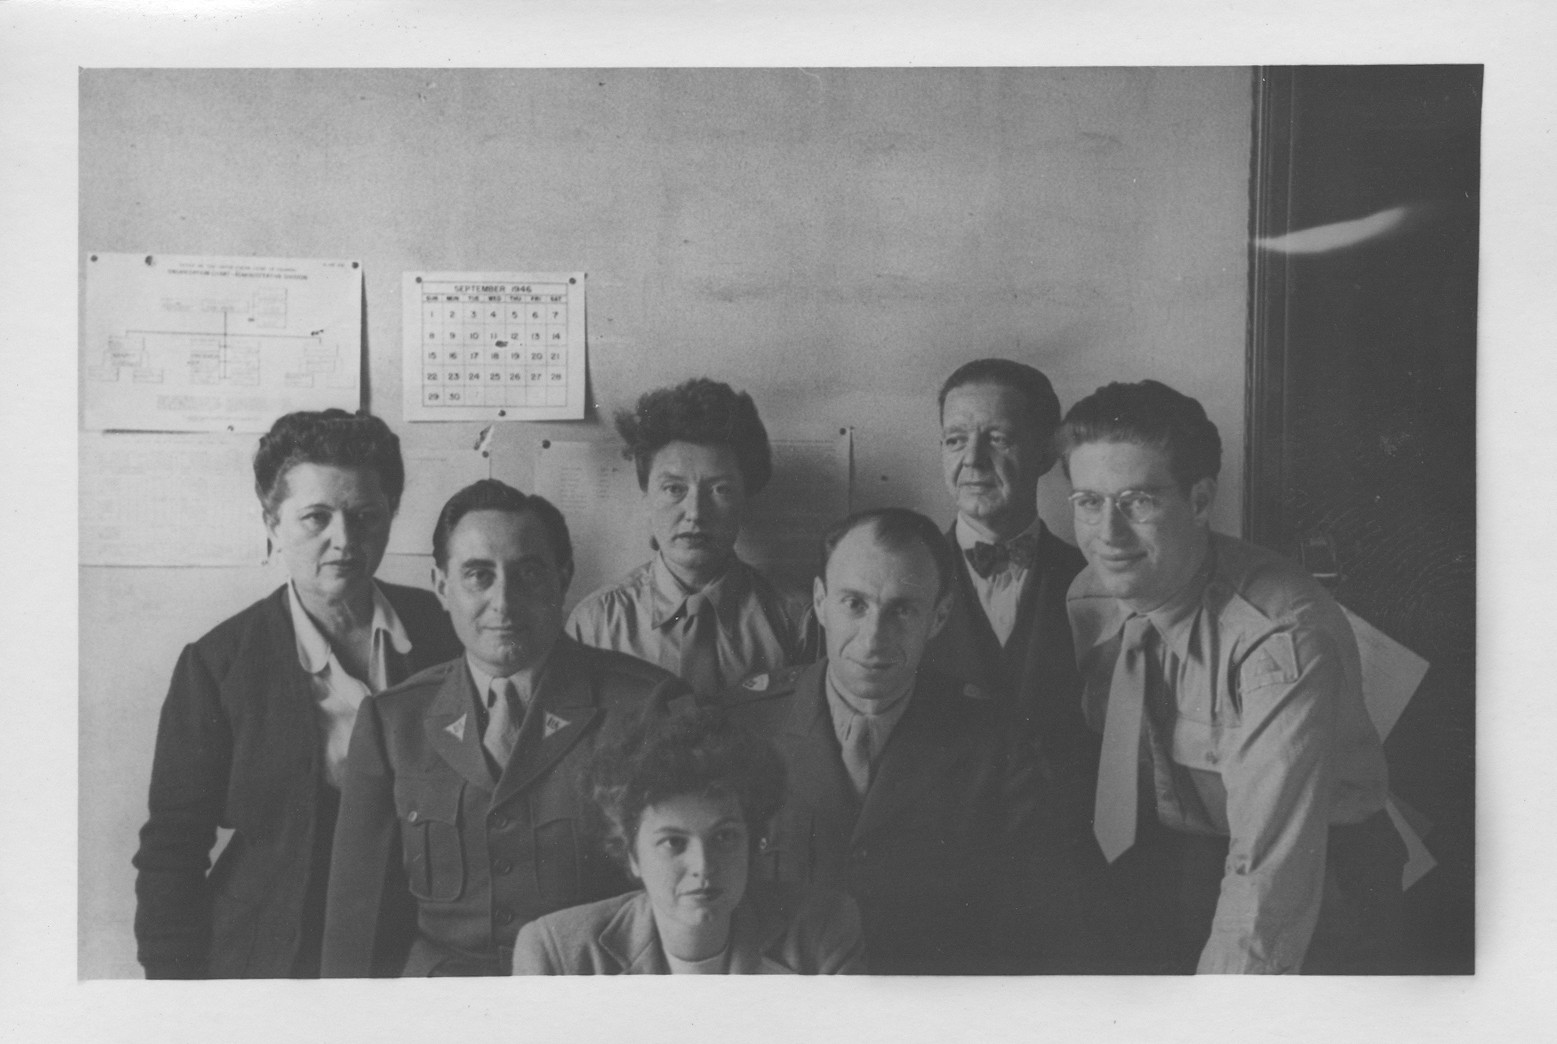 Group portrait of IMT Nuremberg trial interpreters.  Among those pictured is Gerd Schwab (at the right).